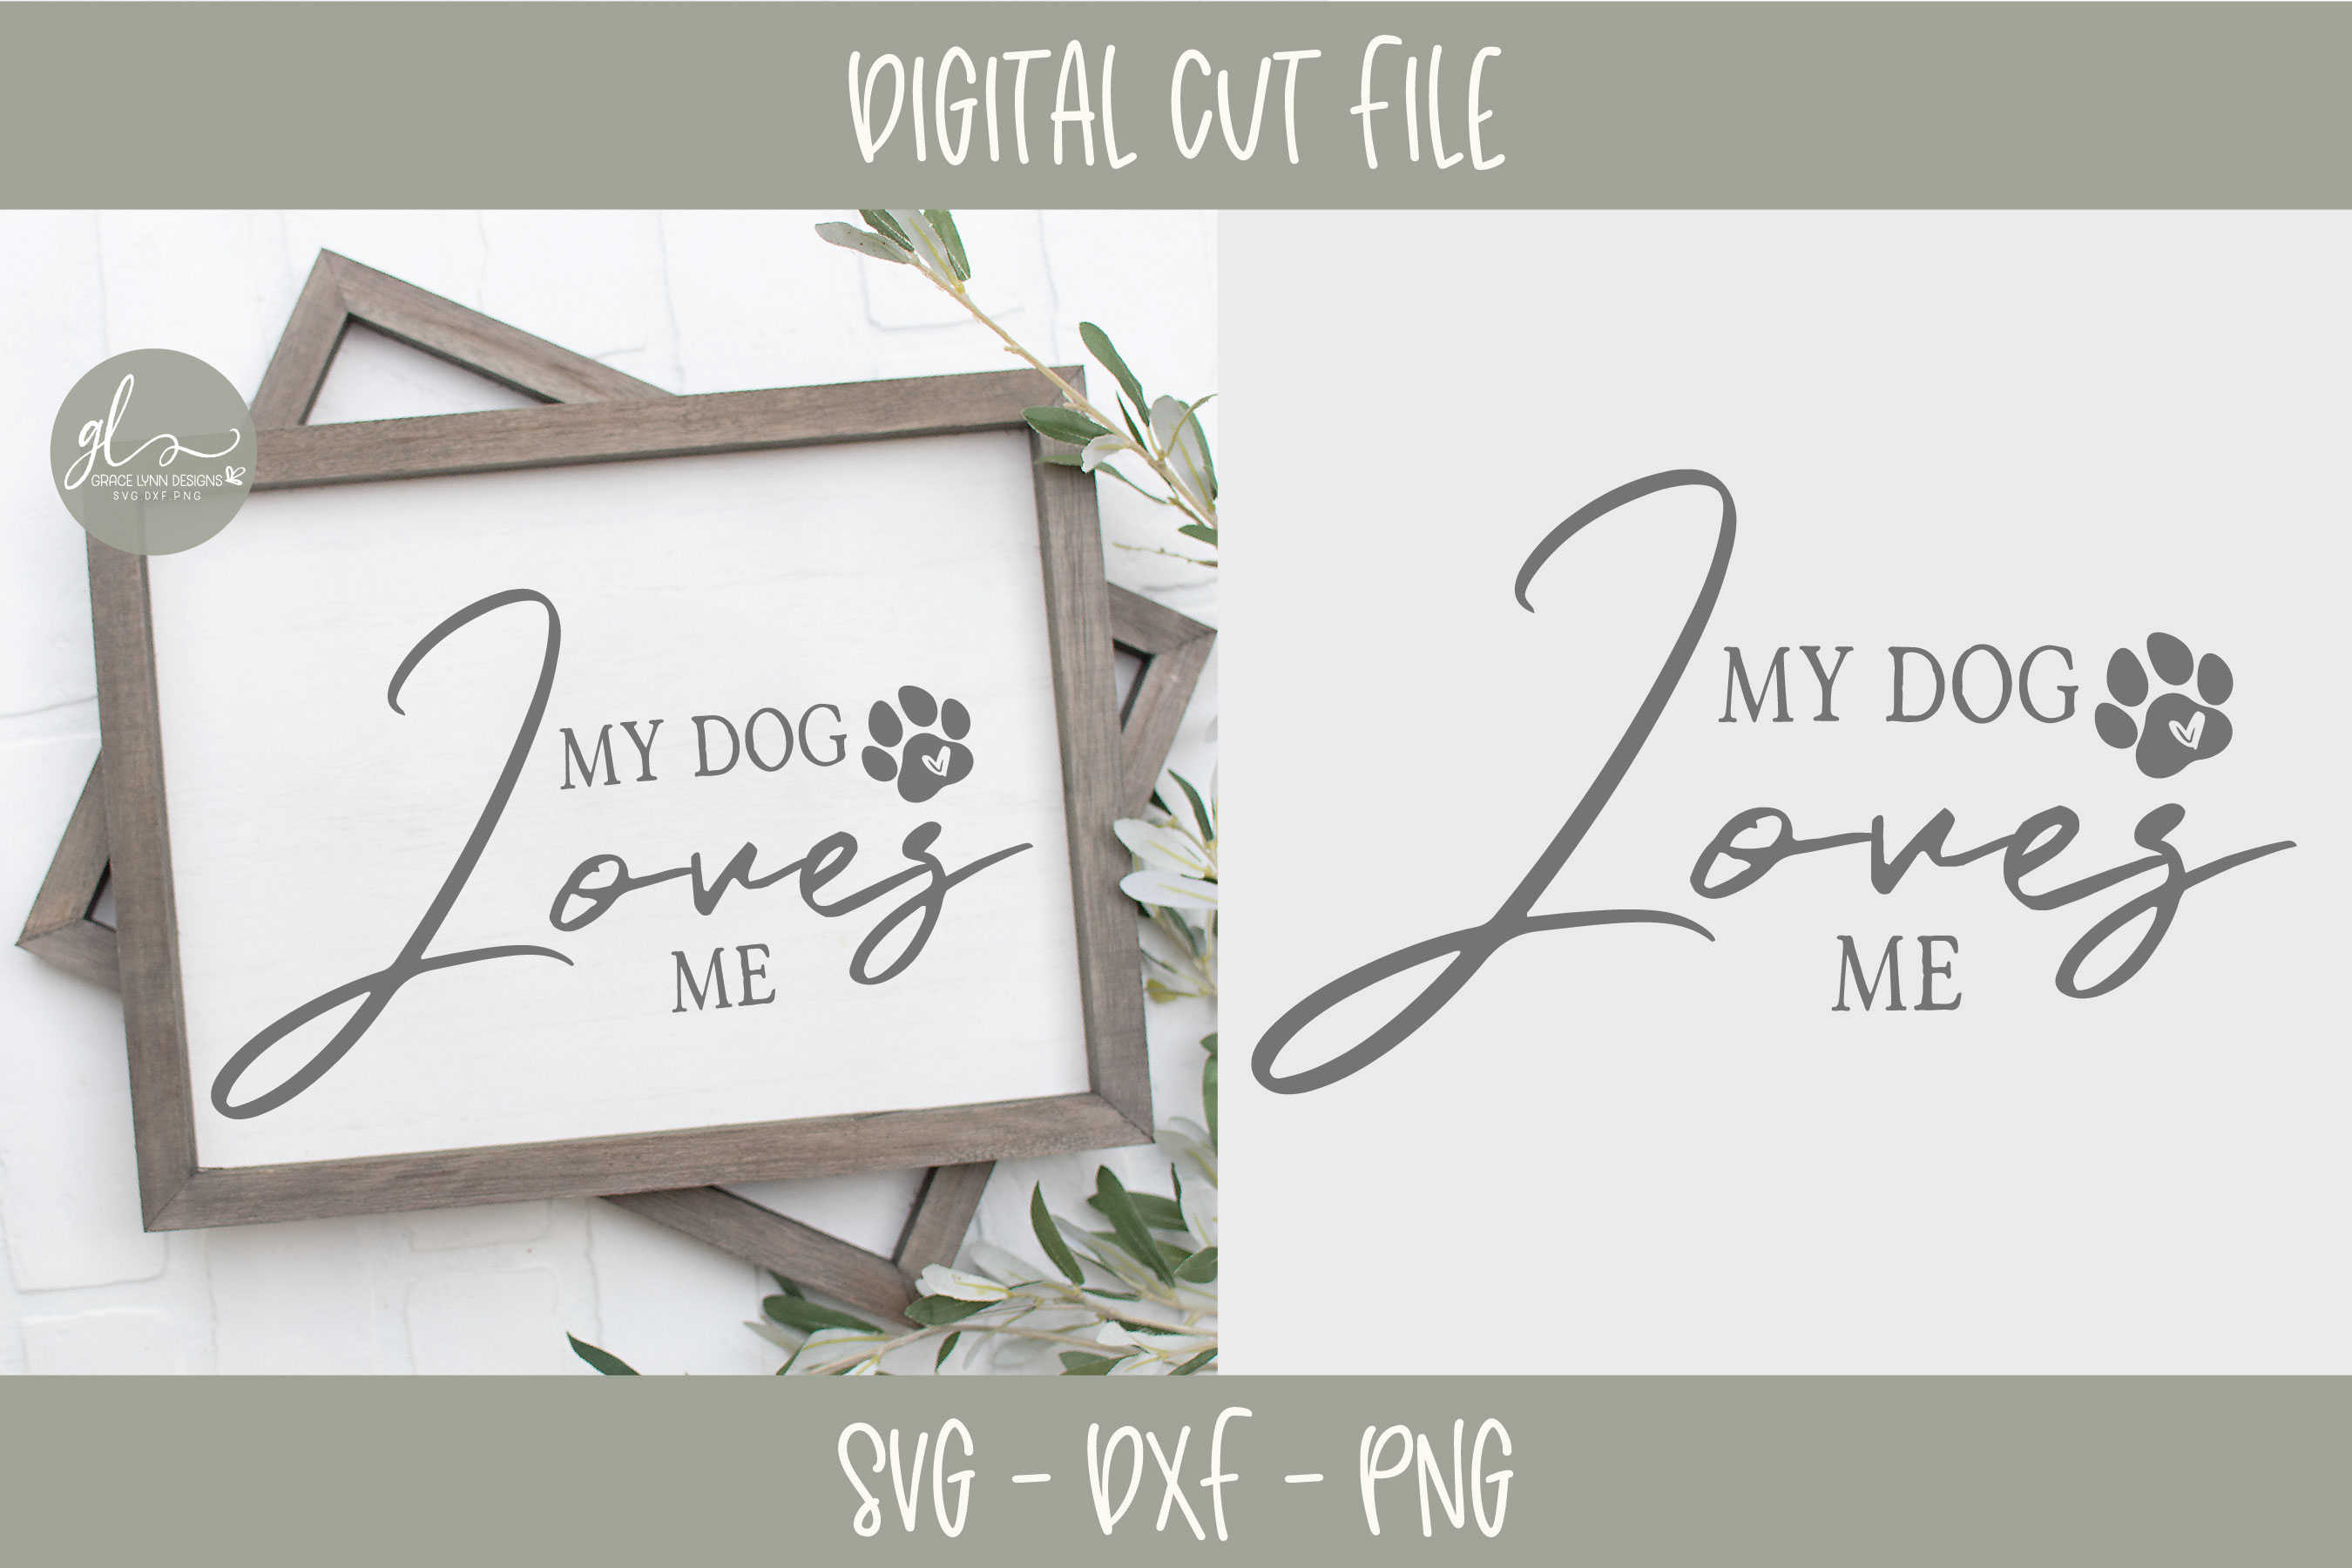 My Dog Loves Me - SVG Cut File example image 1